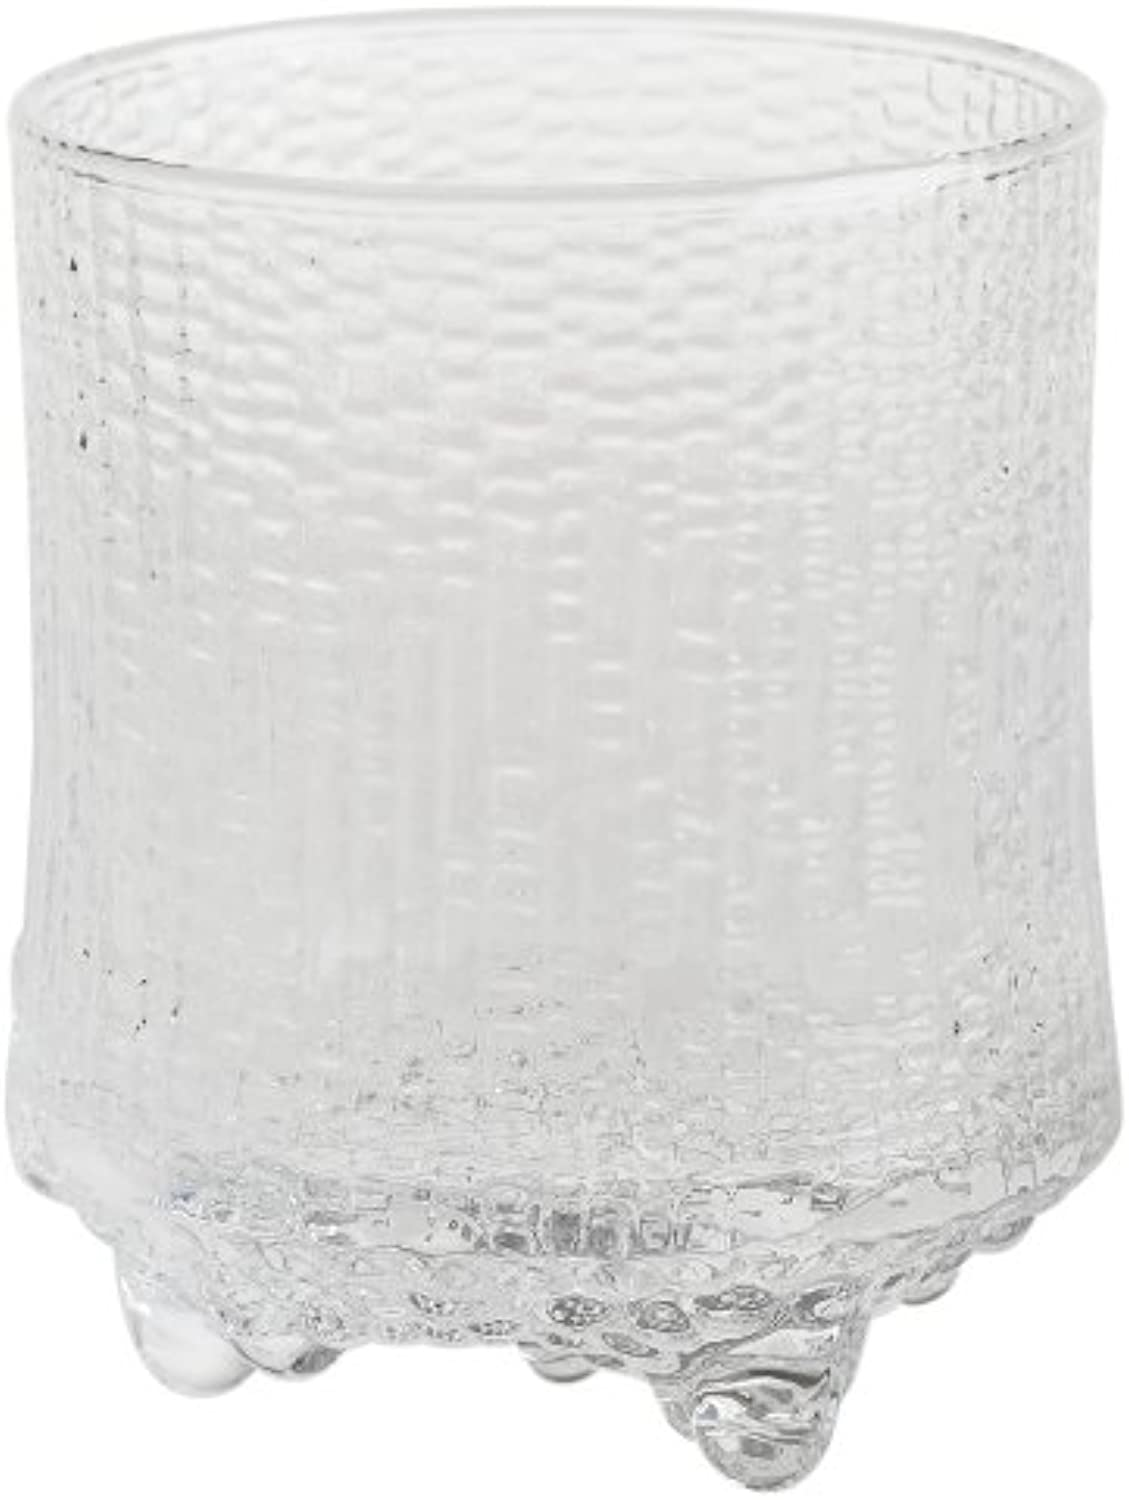 Iittala Ultima Thule Old-Fashioned Glasses, Set of 2